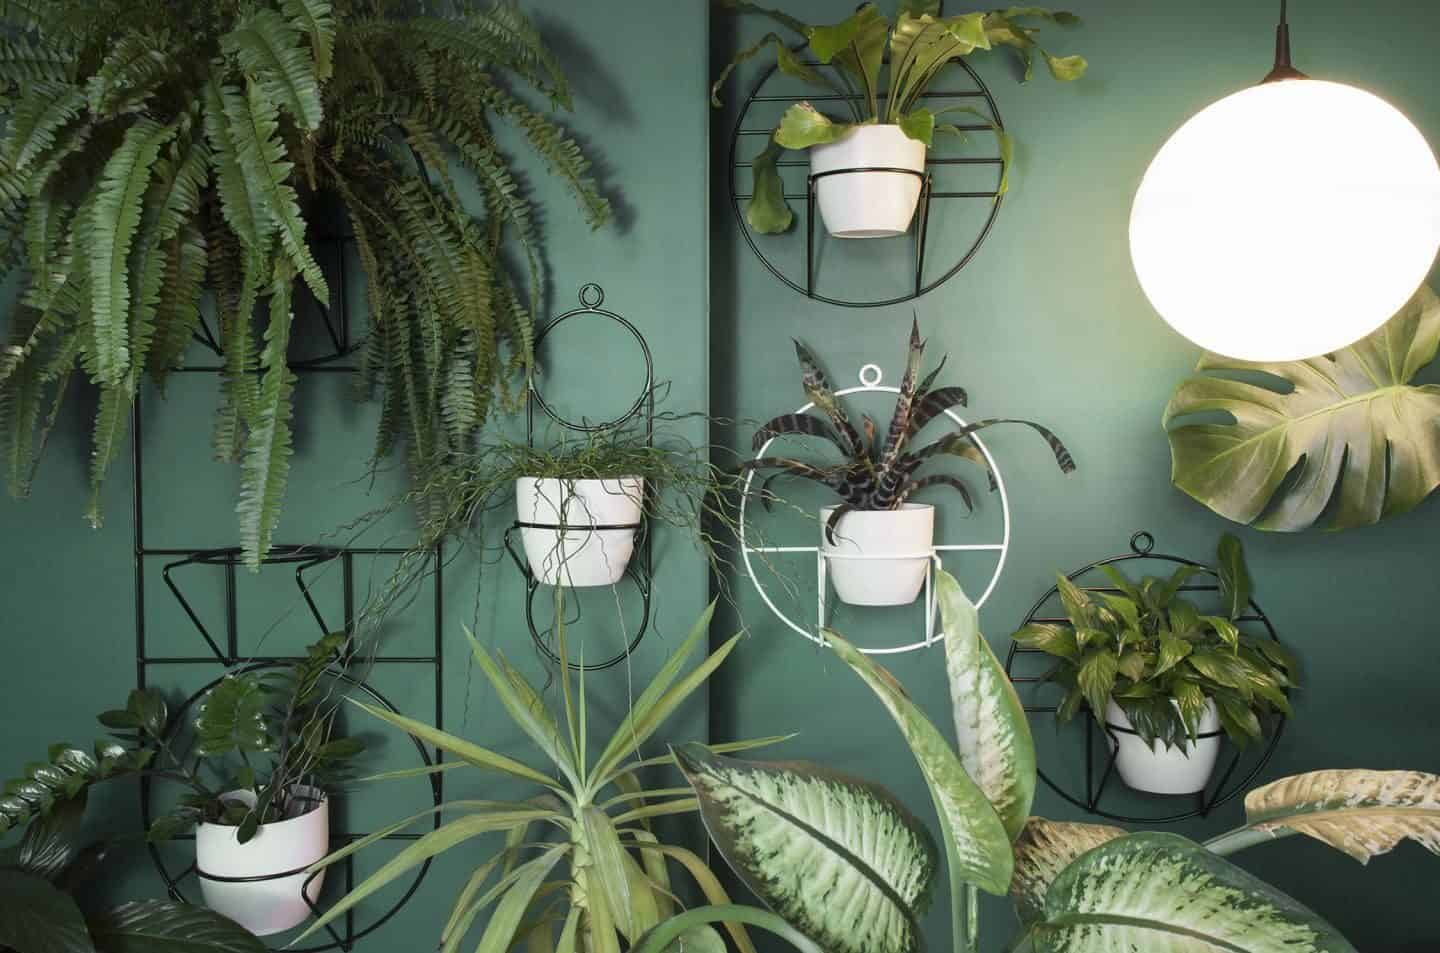 Minimalist design-led plant holders from Polish design studio Bujnie